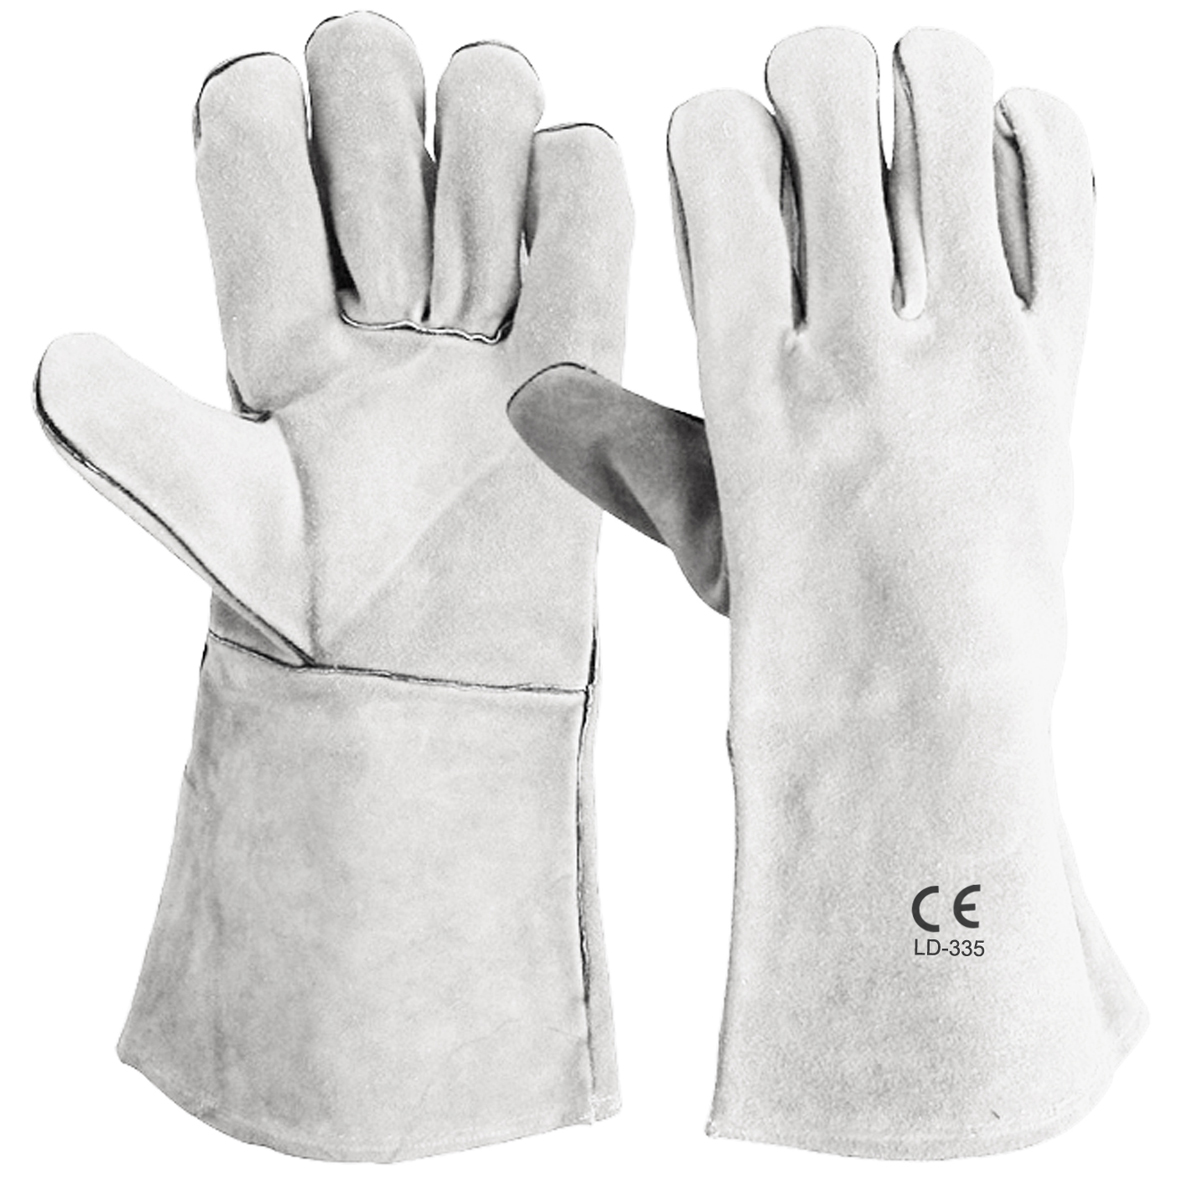 LD-335 Welding Gloves with Welted Seams